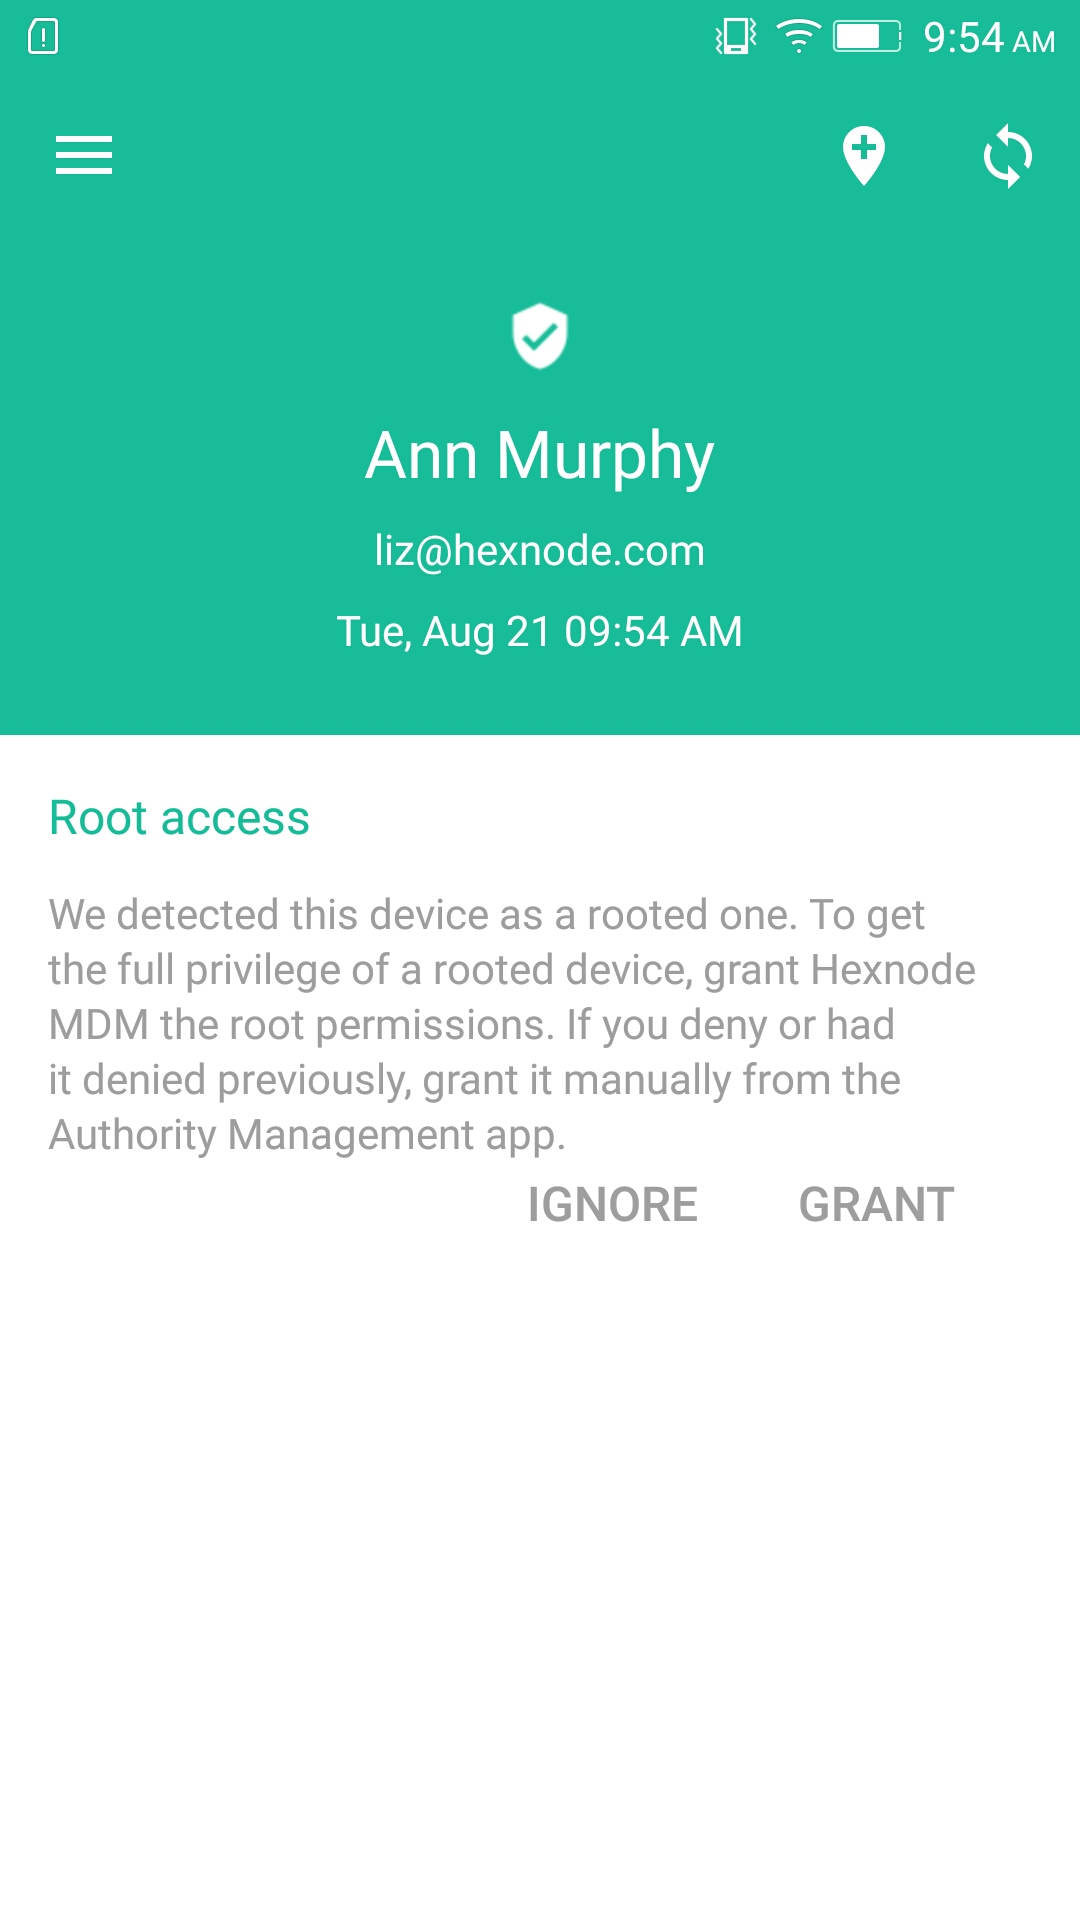 Rooting in Android - Grant Root Access